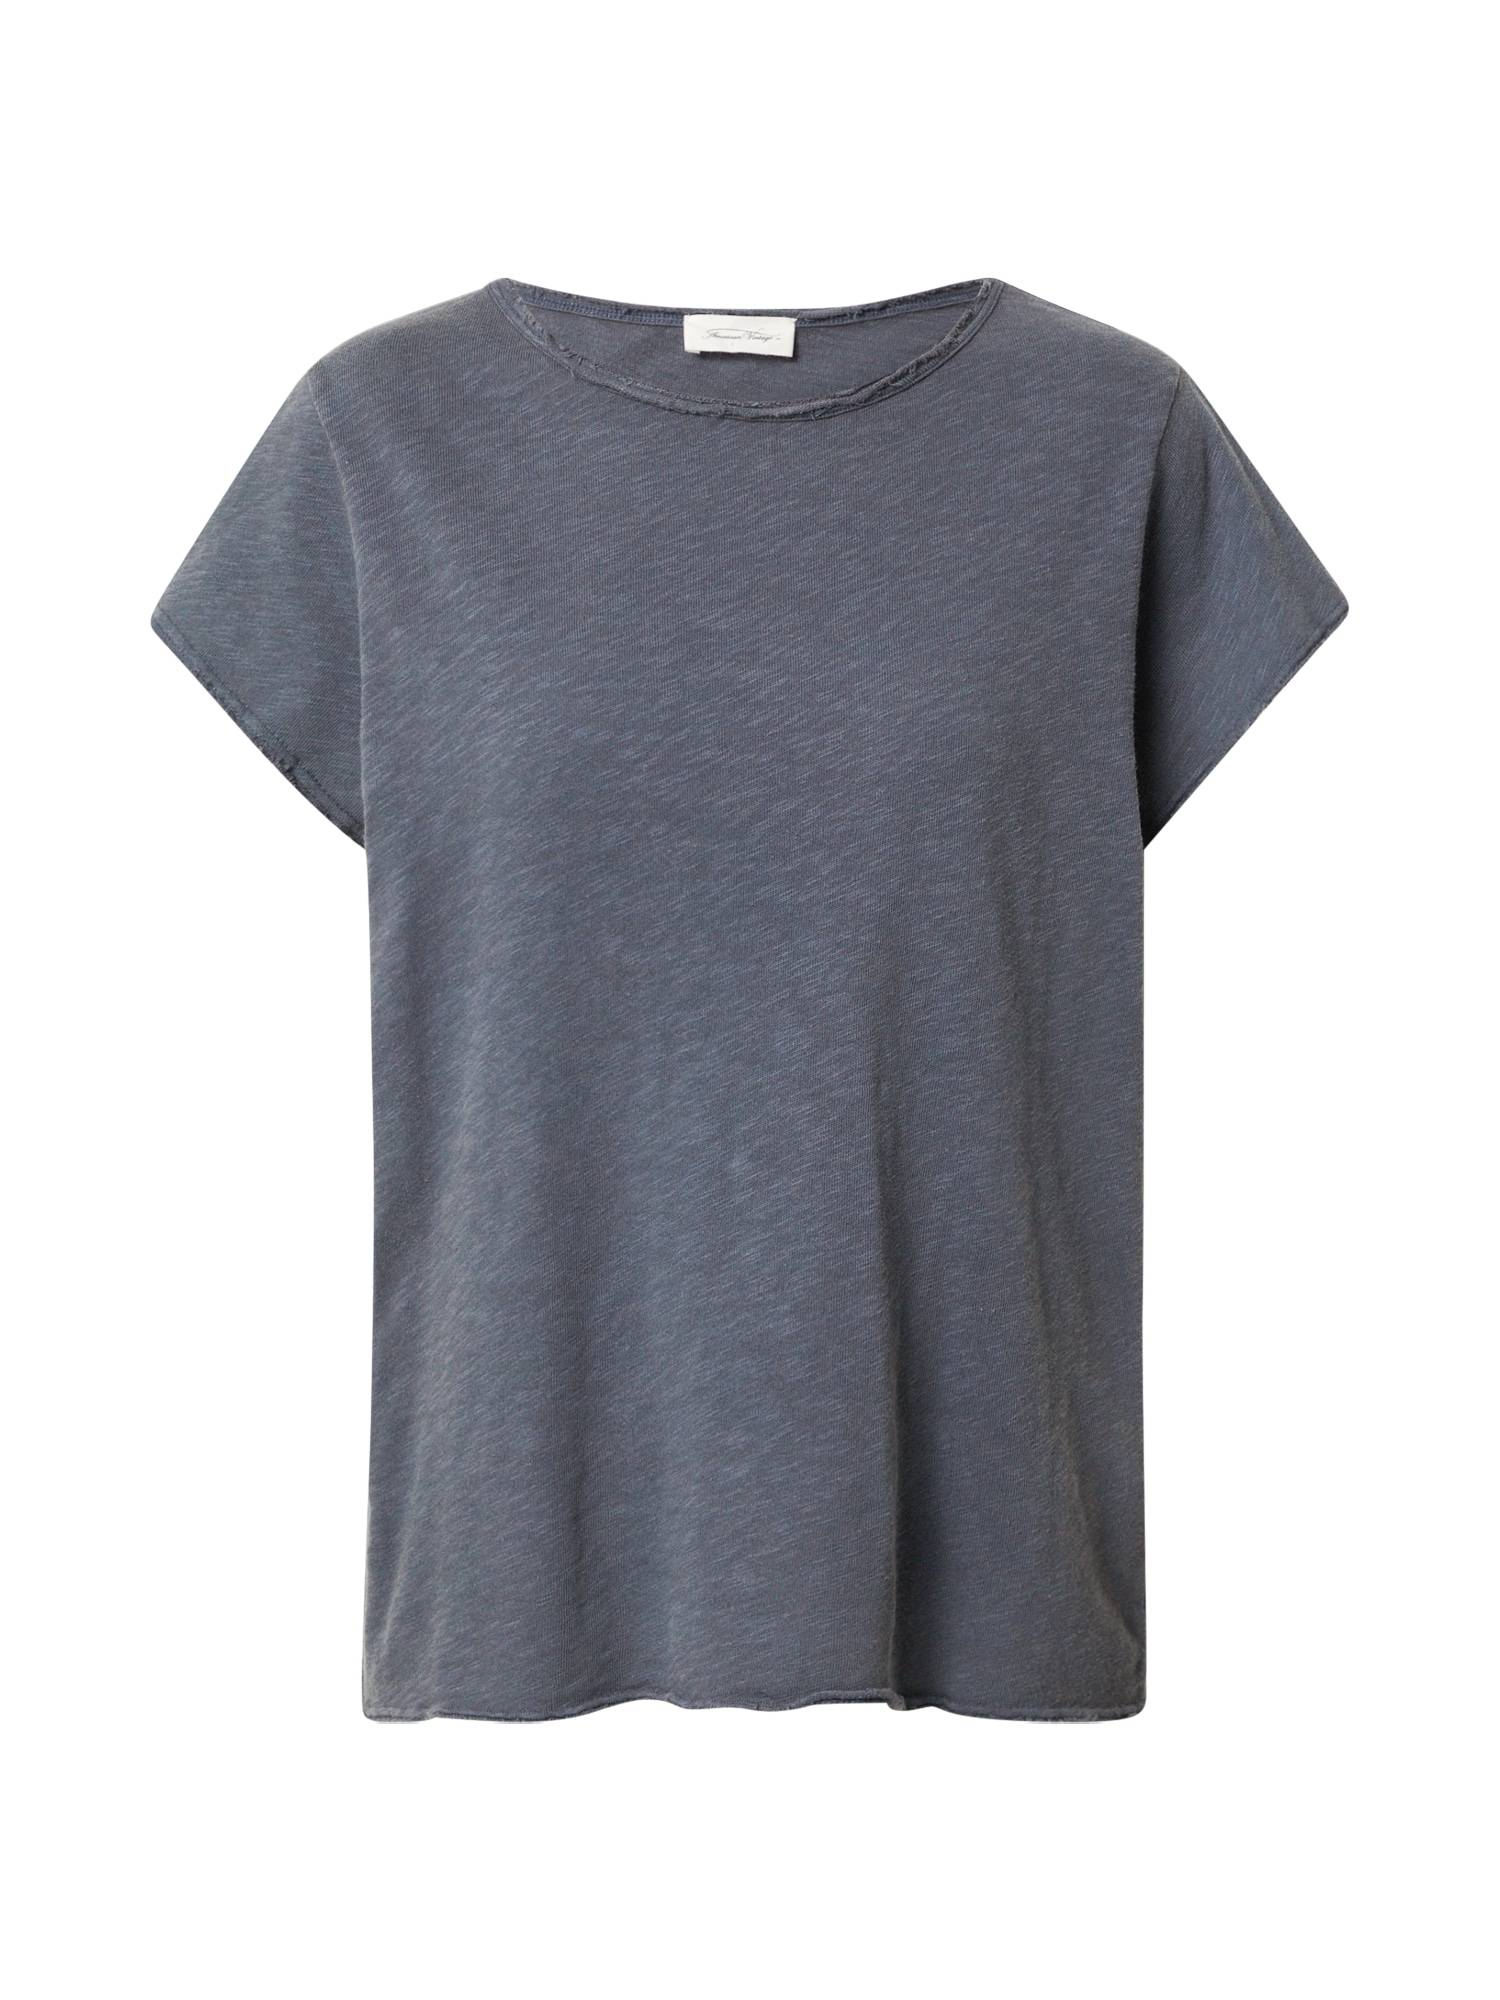 AMERICAN VINTAGE T-shirt 'SON30TG'  - Gris - Taille: S - female